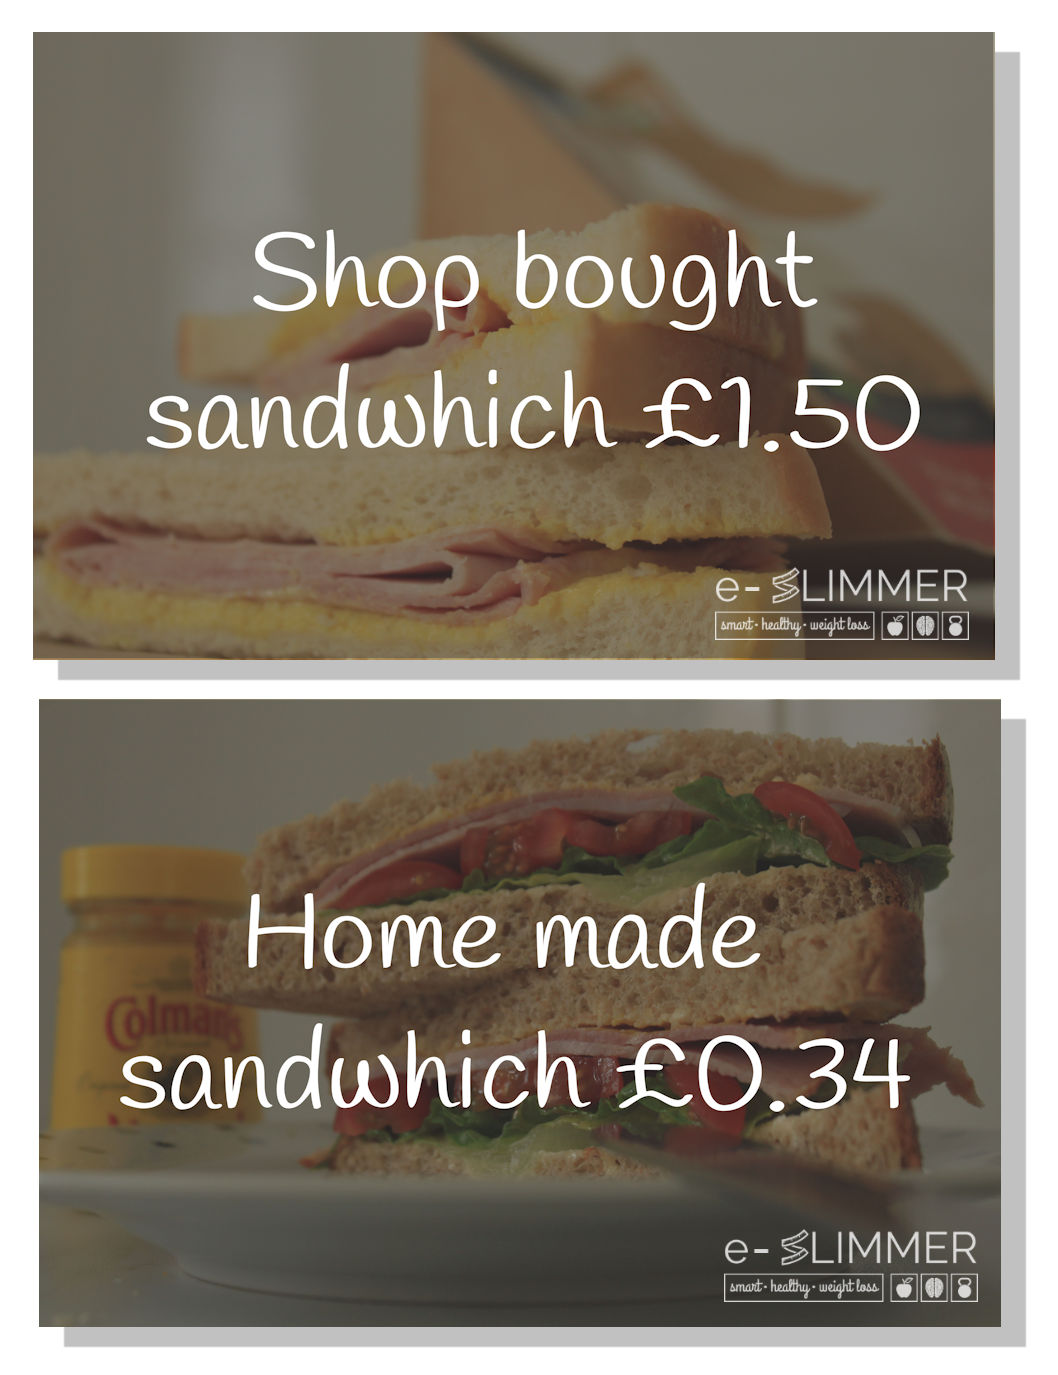 Home made sandwiches are more appetising, better for you and they cost less than the shop bought versions.